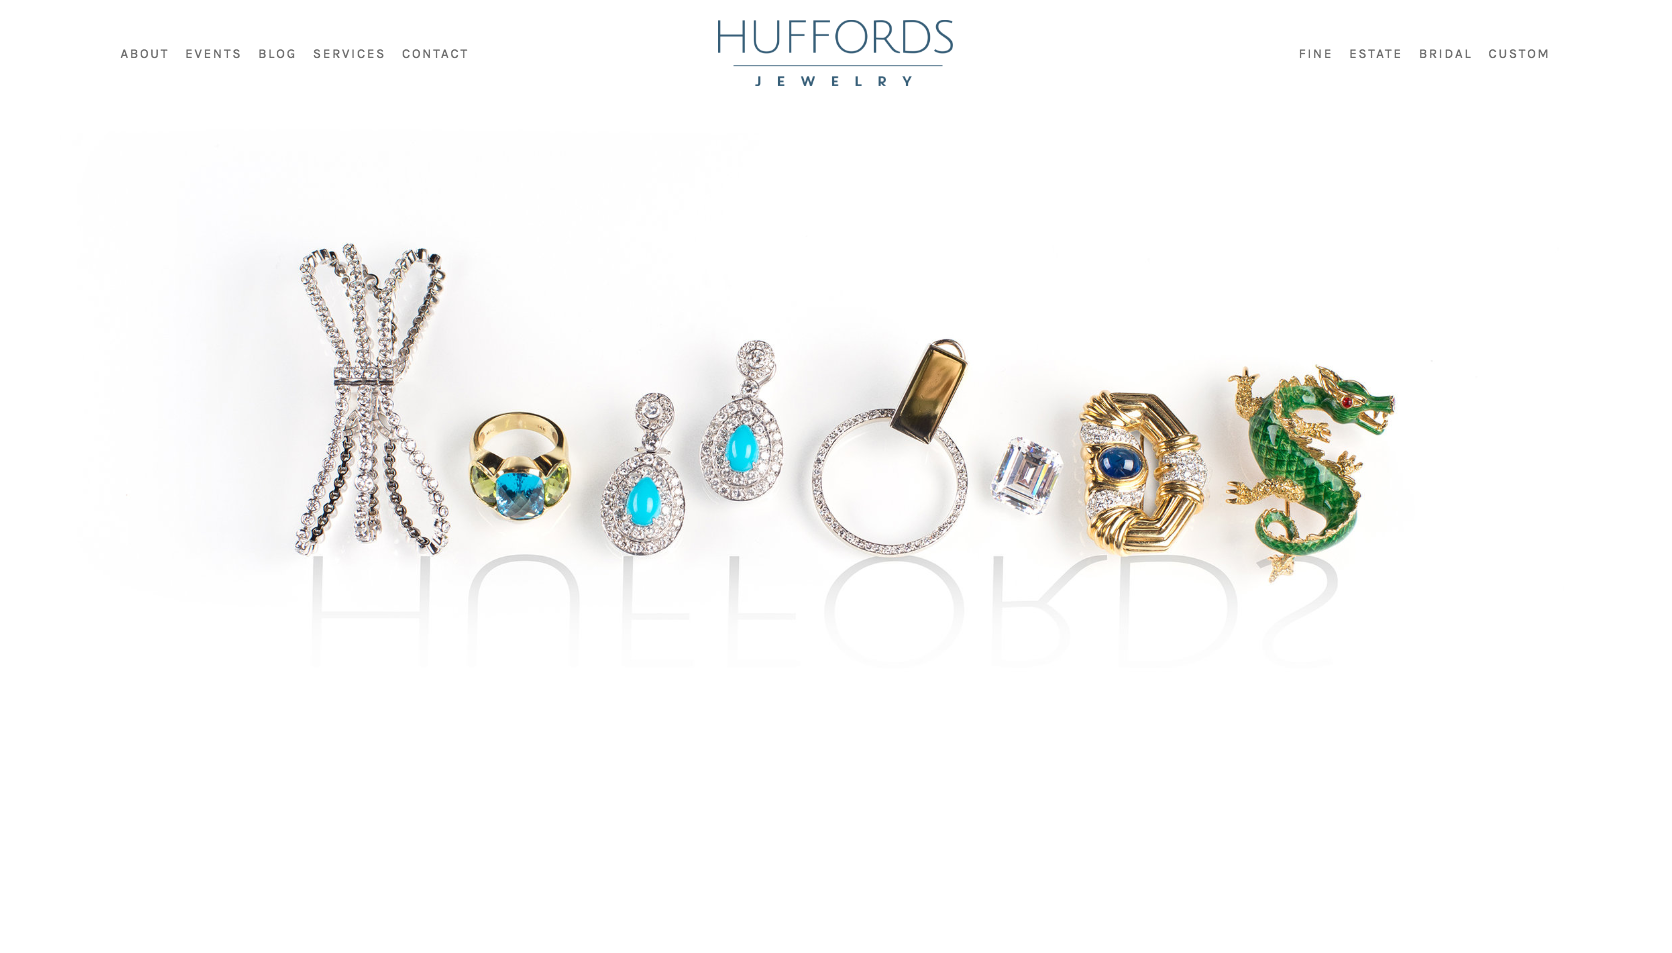 """Huffords"", designed and photographed by Cfx."